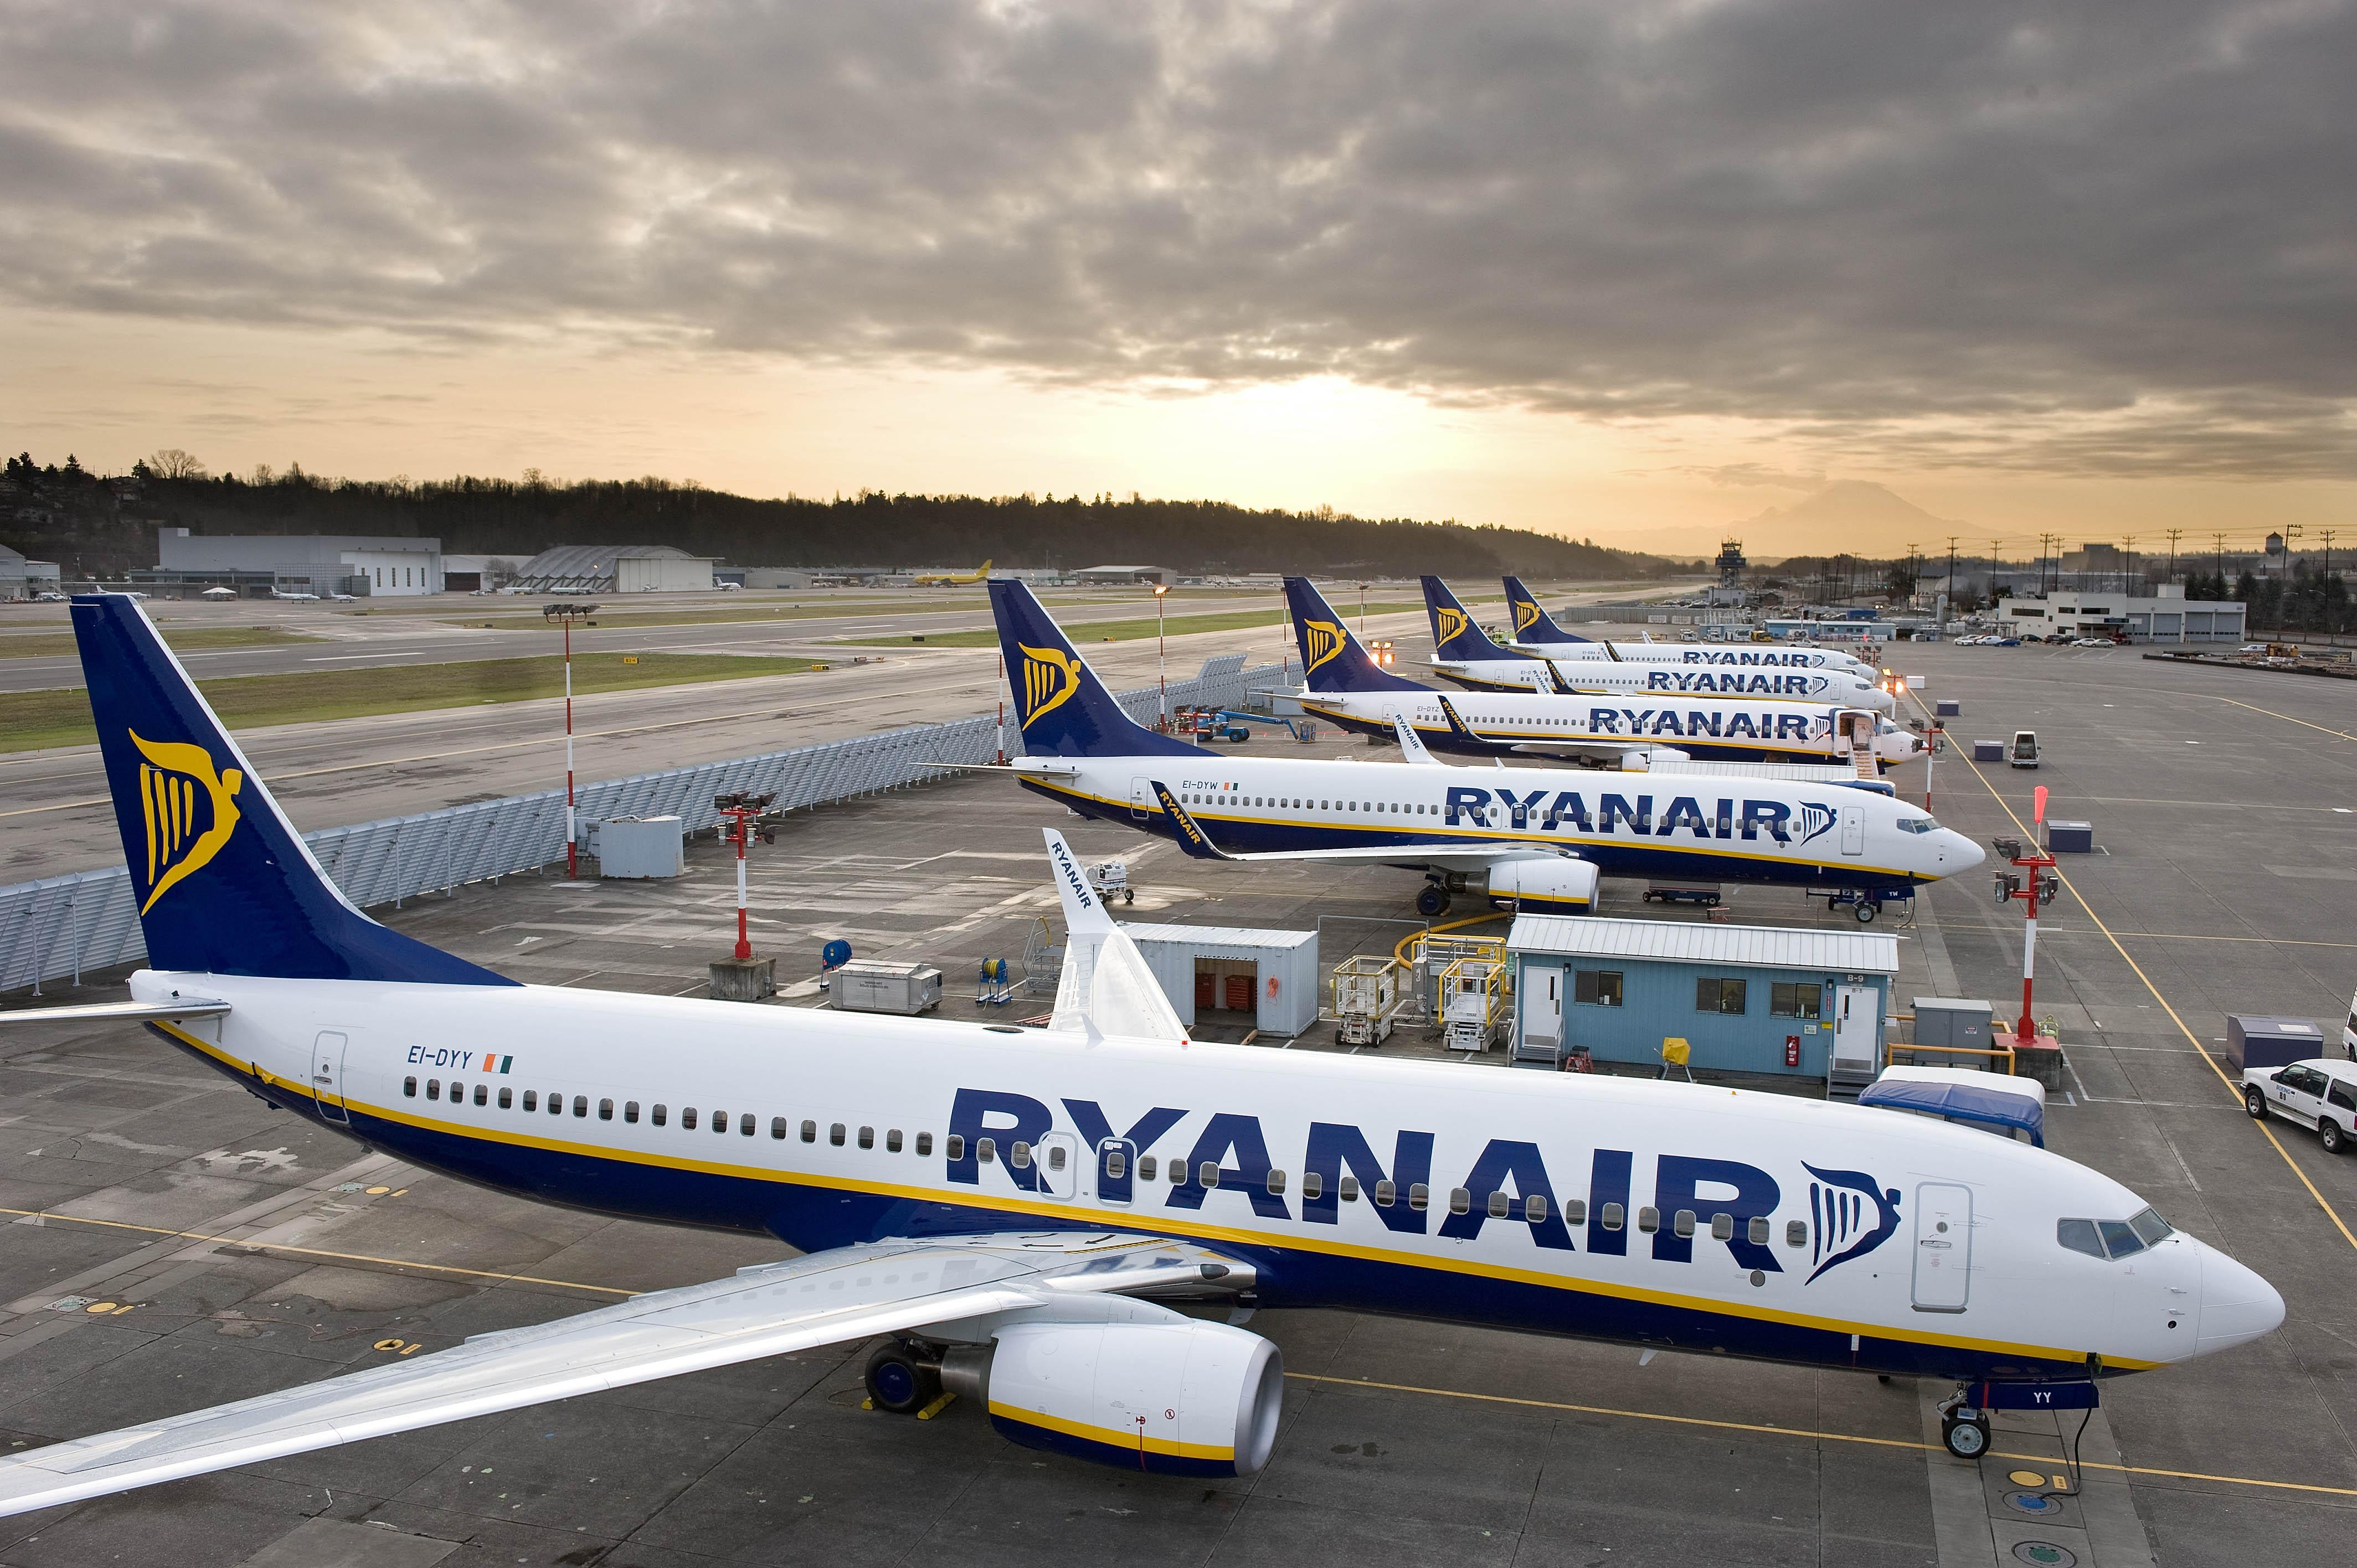 Bachelor Party Too Much For RyanAir